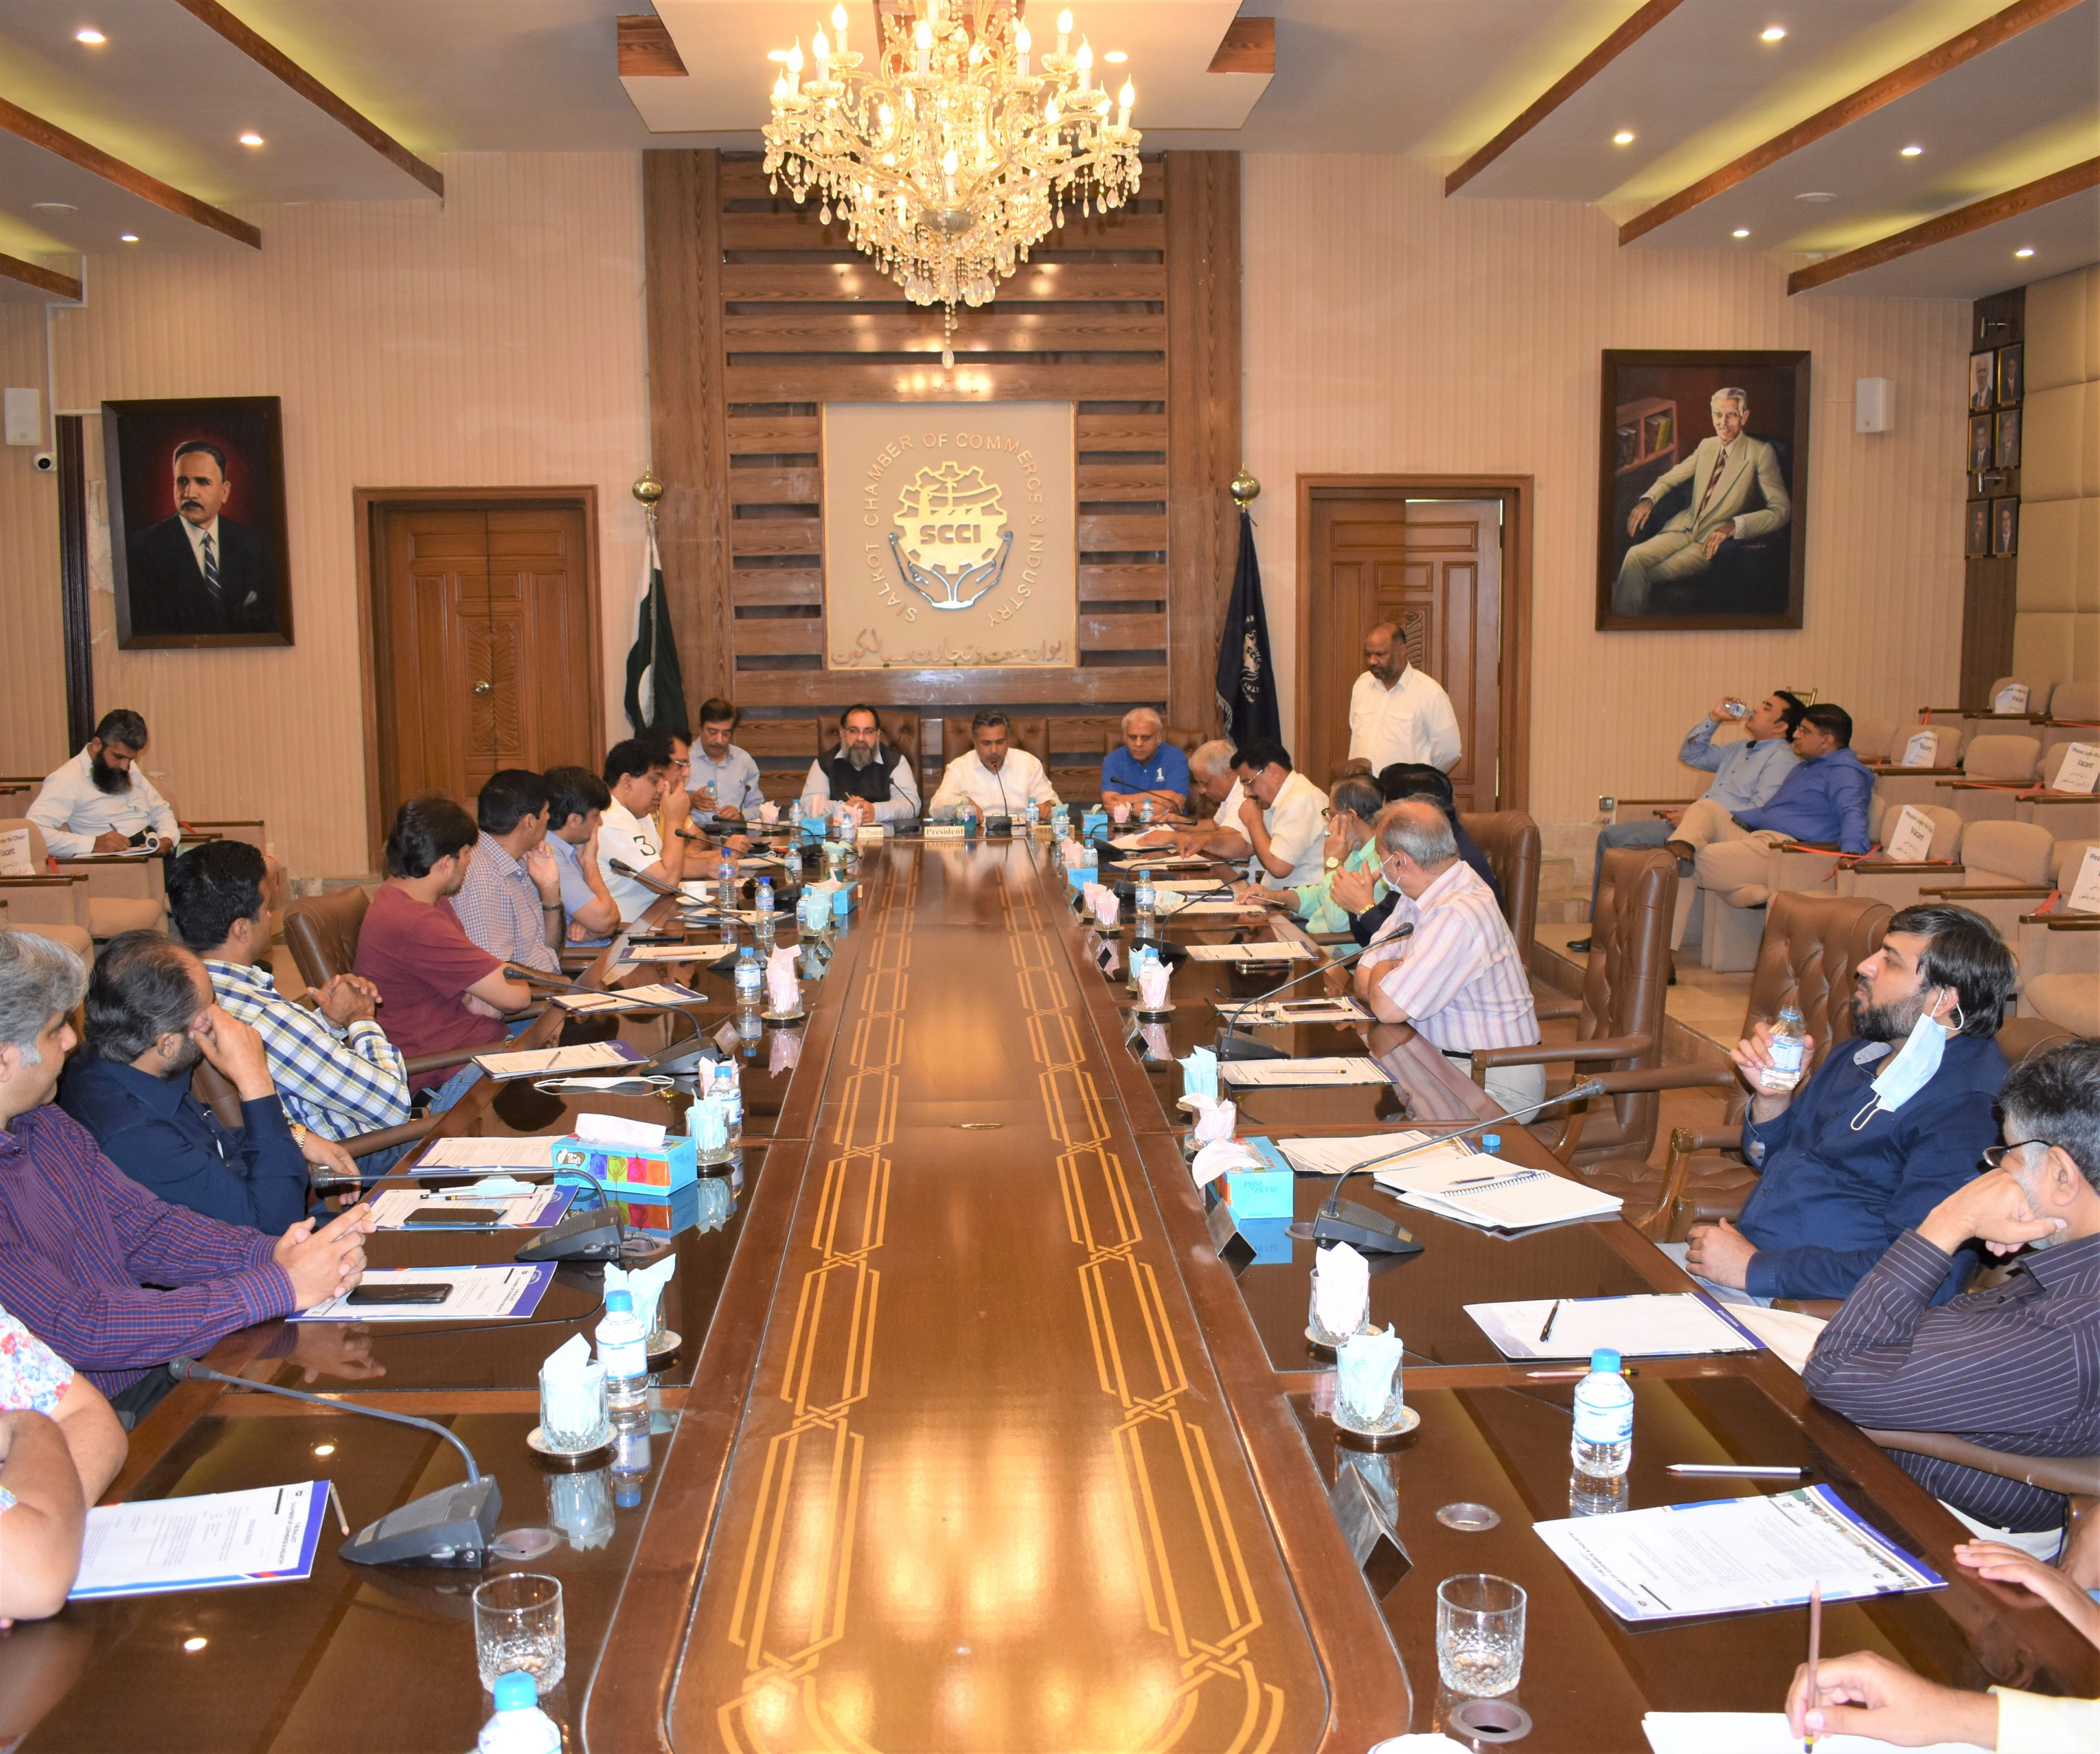 On July 05, 2021, A Joint Meeting of all Trade Bodies of Sialkot was held in Sialkot Chamber of Commerce and Industry to discuss the issue of levy of 5% Withholding Sales Tax on Export Companies against purchases from unregistered persons.  The meeting was chaired by Mr. Qaisar Iqbal Baryar, President SCCI. Wherein, he informed that SCCI and All Trade Bodies of Sialkot had been demanding its abolition for the last two years but despite all assurances, no amendment had been included in the Finance Act 2021.   Ch. Ahmed Zulfiqar Hayat, Mr. Faisal Mahboob Sheikh, Mr. Qamar Munir, Mr. Zeeshan Tariq, Mr. Ejaz A. Khokhar, Ch. Raza Munir and Members of Executive committee SCCI were also present in the meeting.